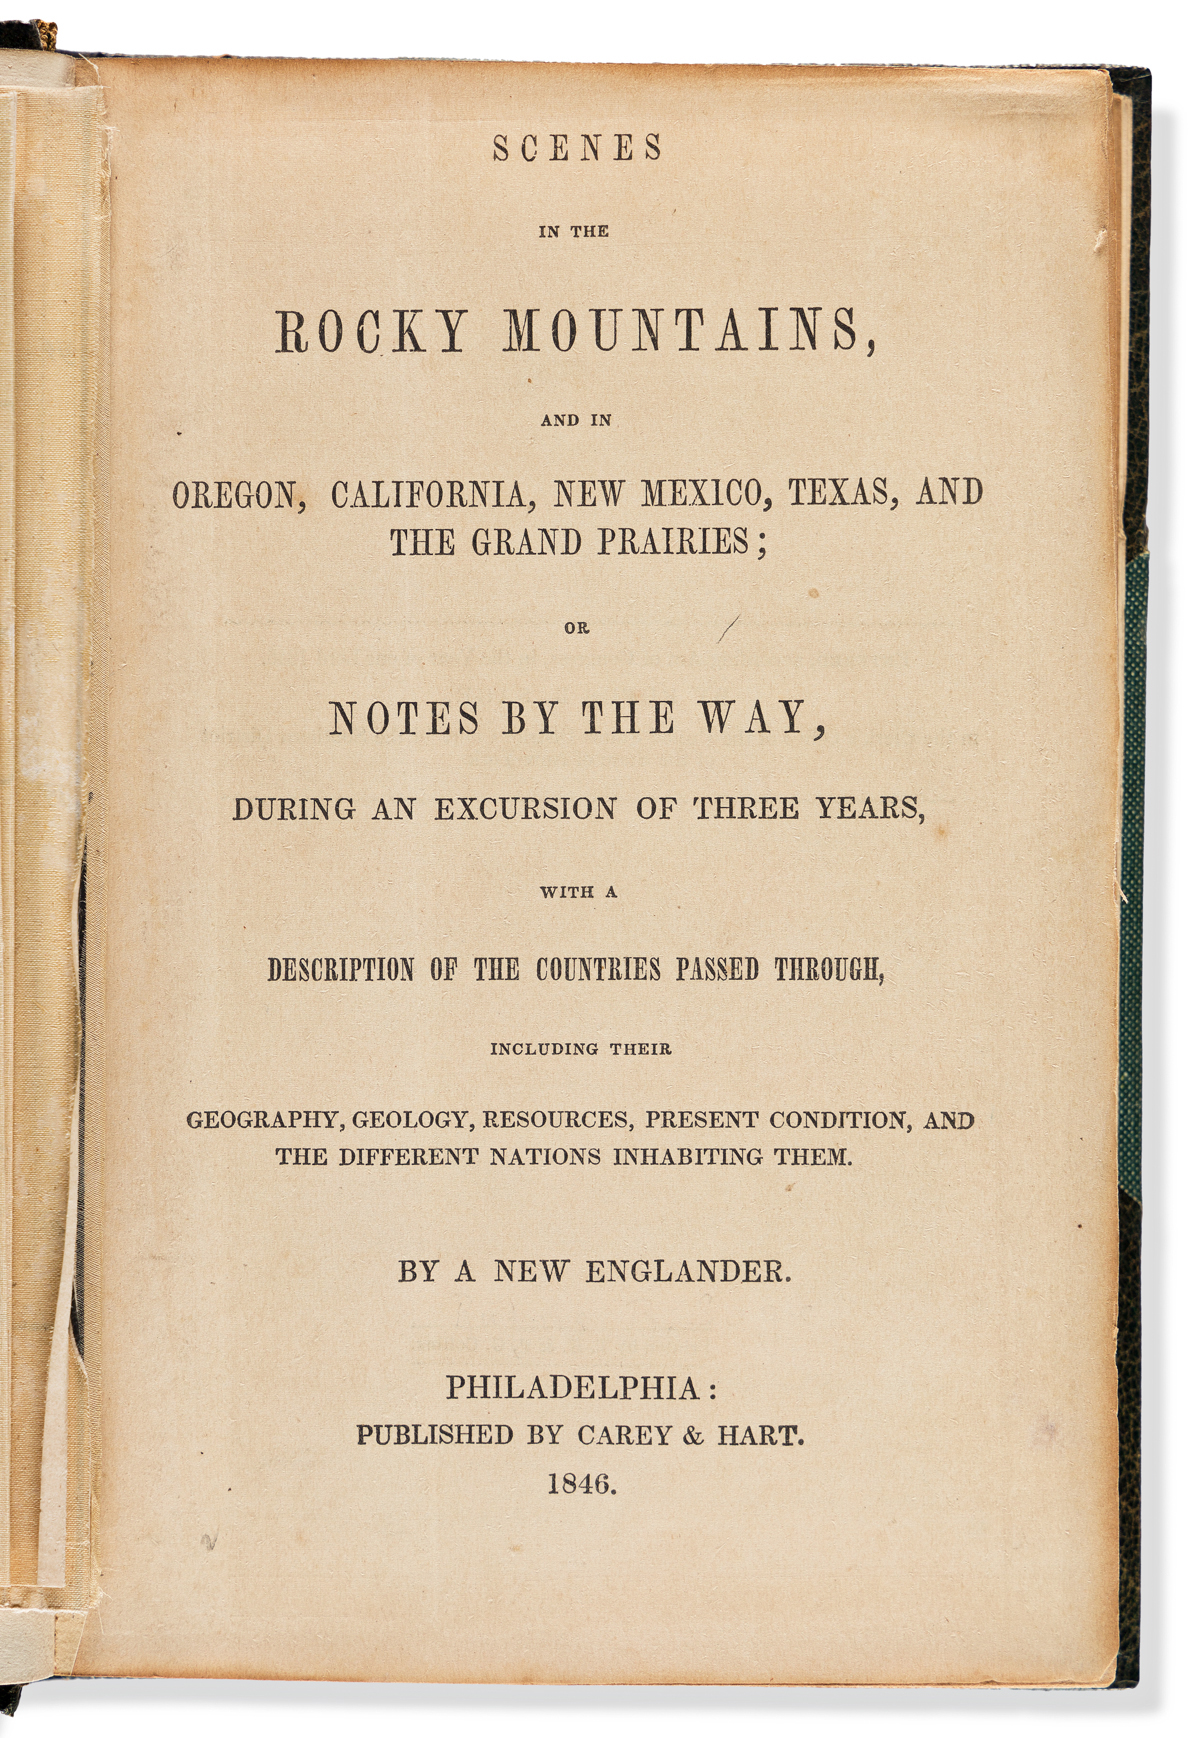 Sage, Rufus (1817-1893) Scenes in the Rocky Mountains, and in Oregon, California, New Mexico, Texas, and the Grand Prairies.